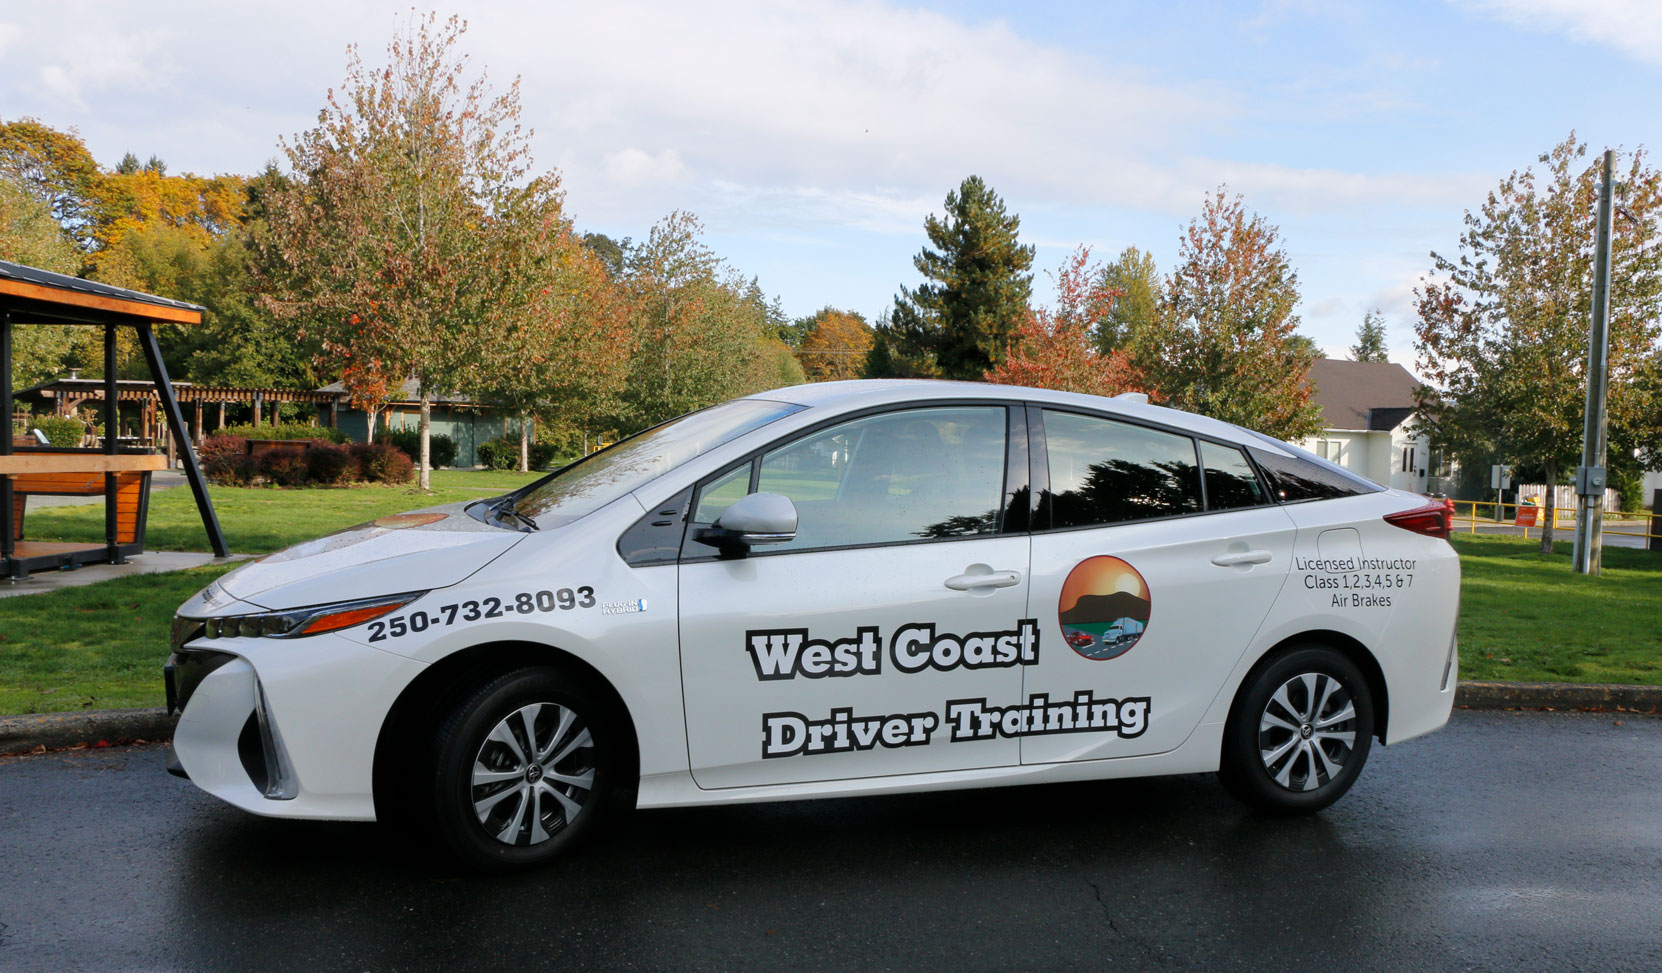 Our 2020 Toyota Prius Prime is now available for lessons (photo: West Coast Driver Training)